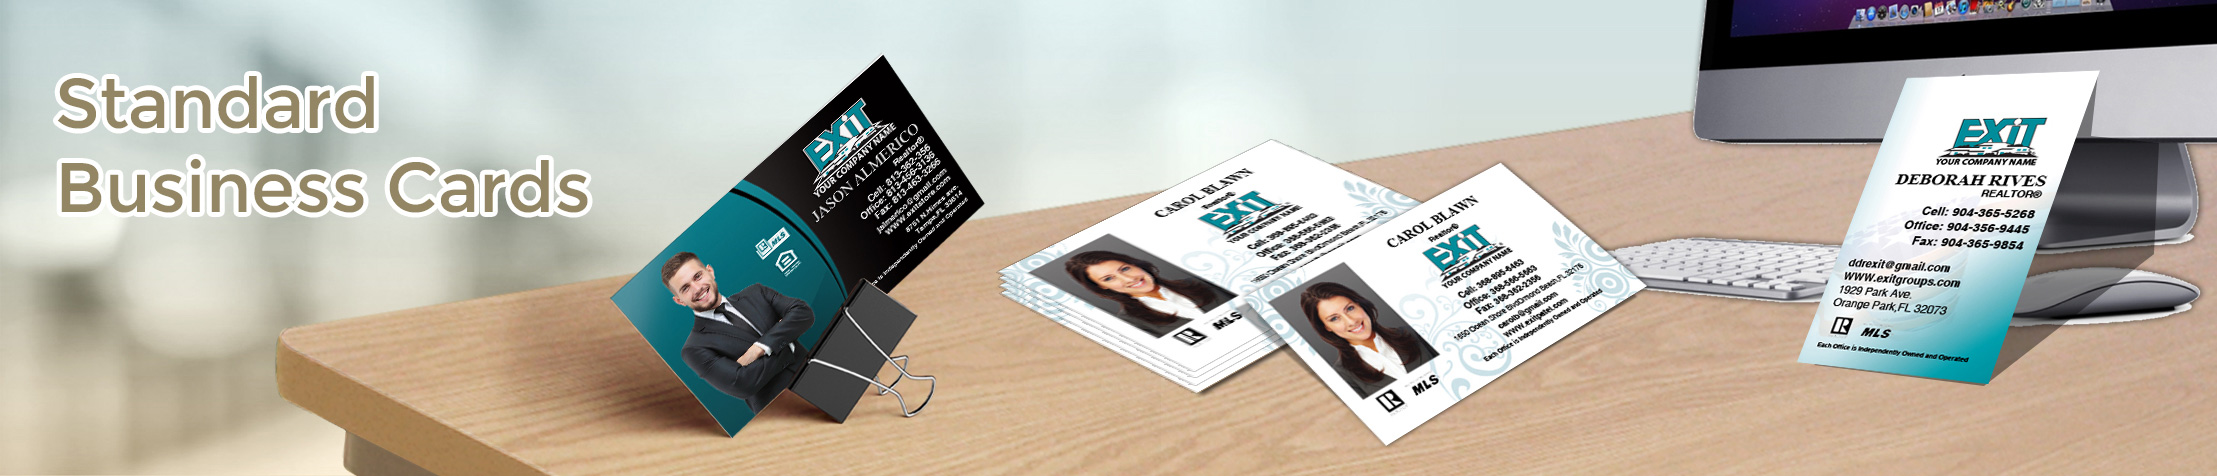 Exit Realty Standard Business Cards - Exit Realty Approved Vendor marketing materials | BestPrintBuy.com